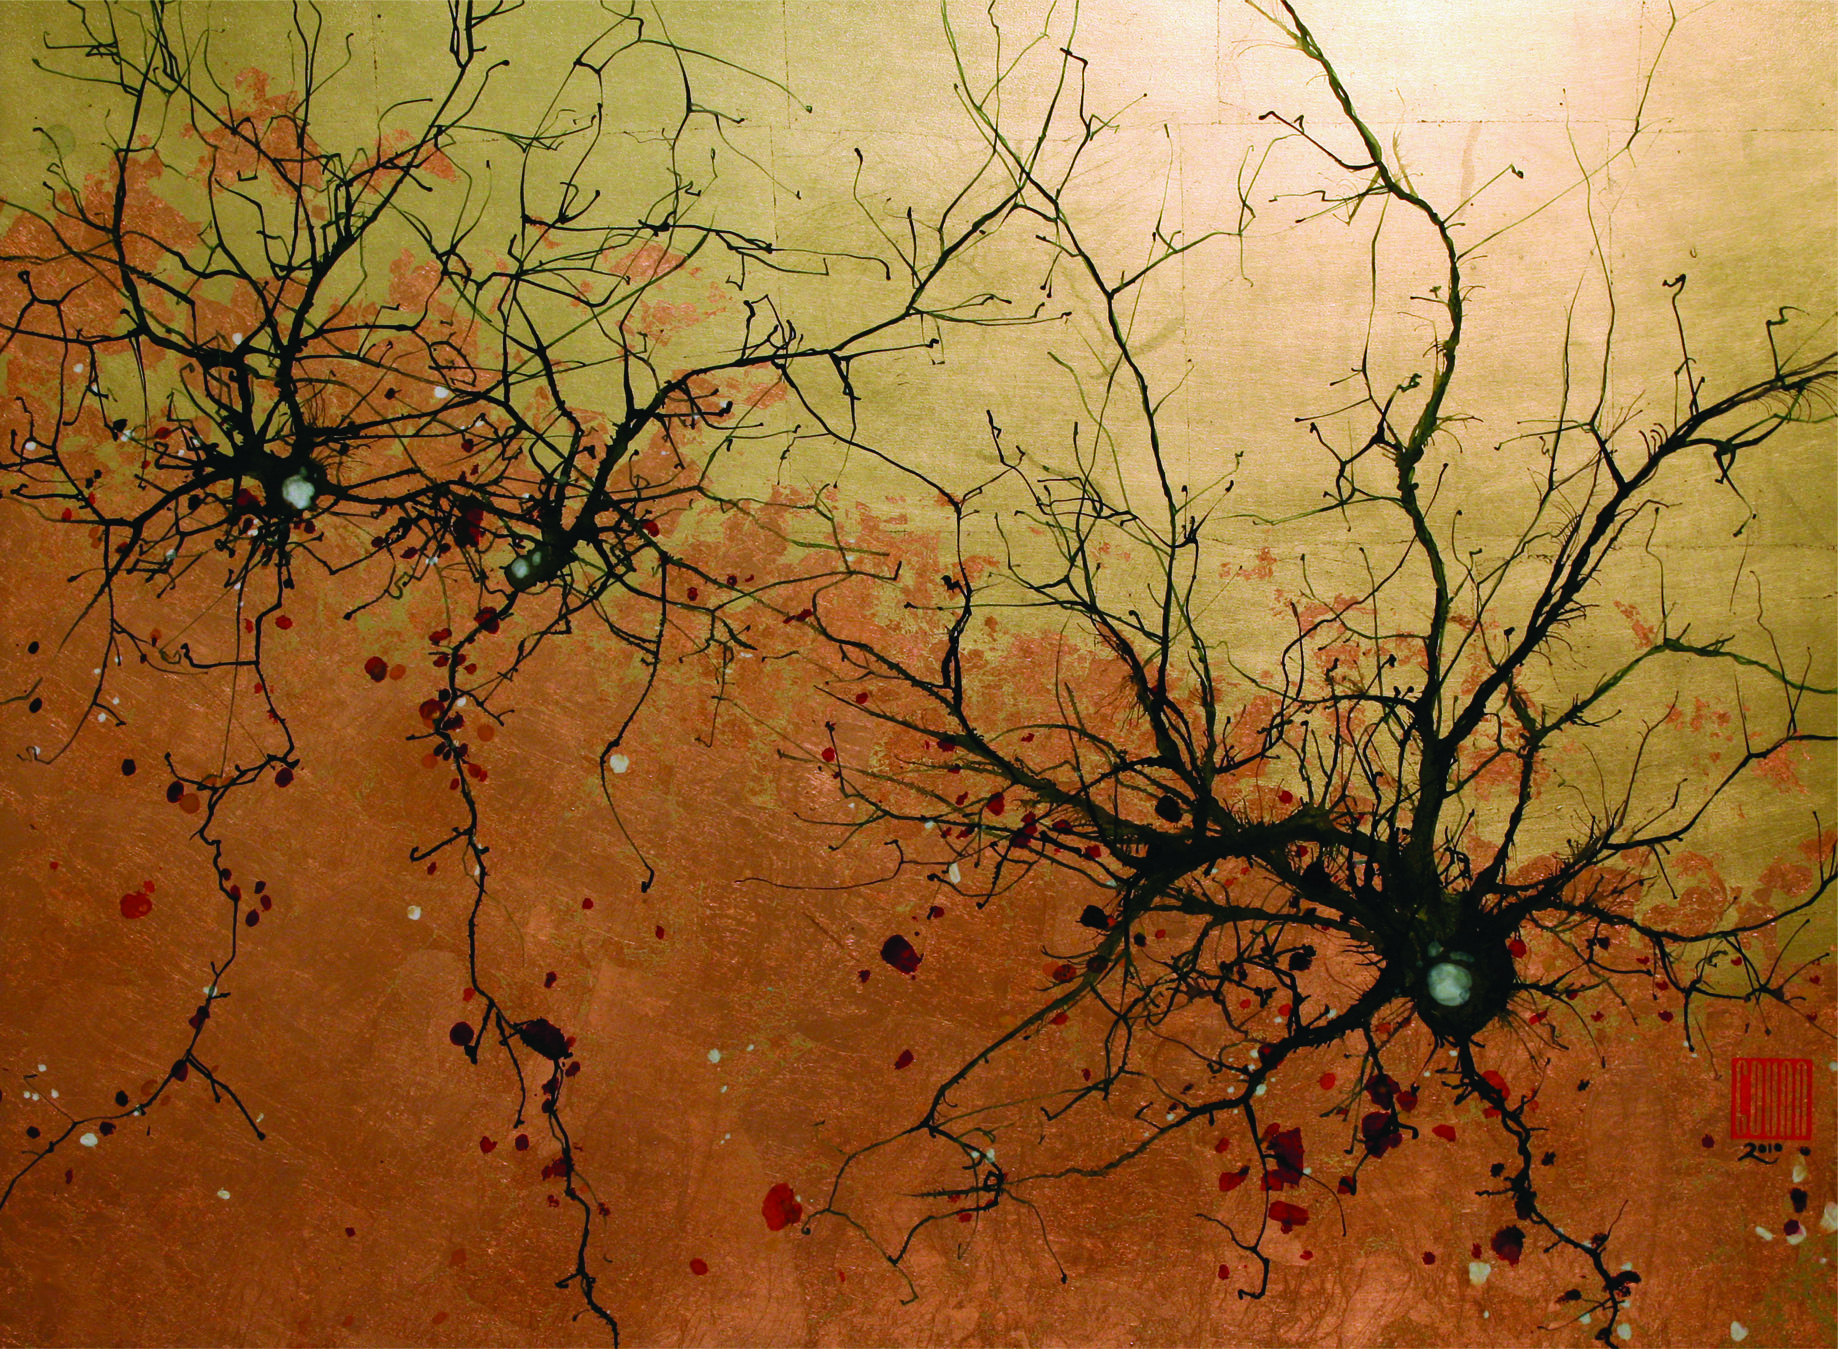 Purkinje Neurons